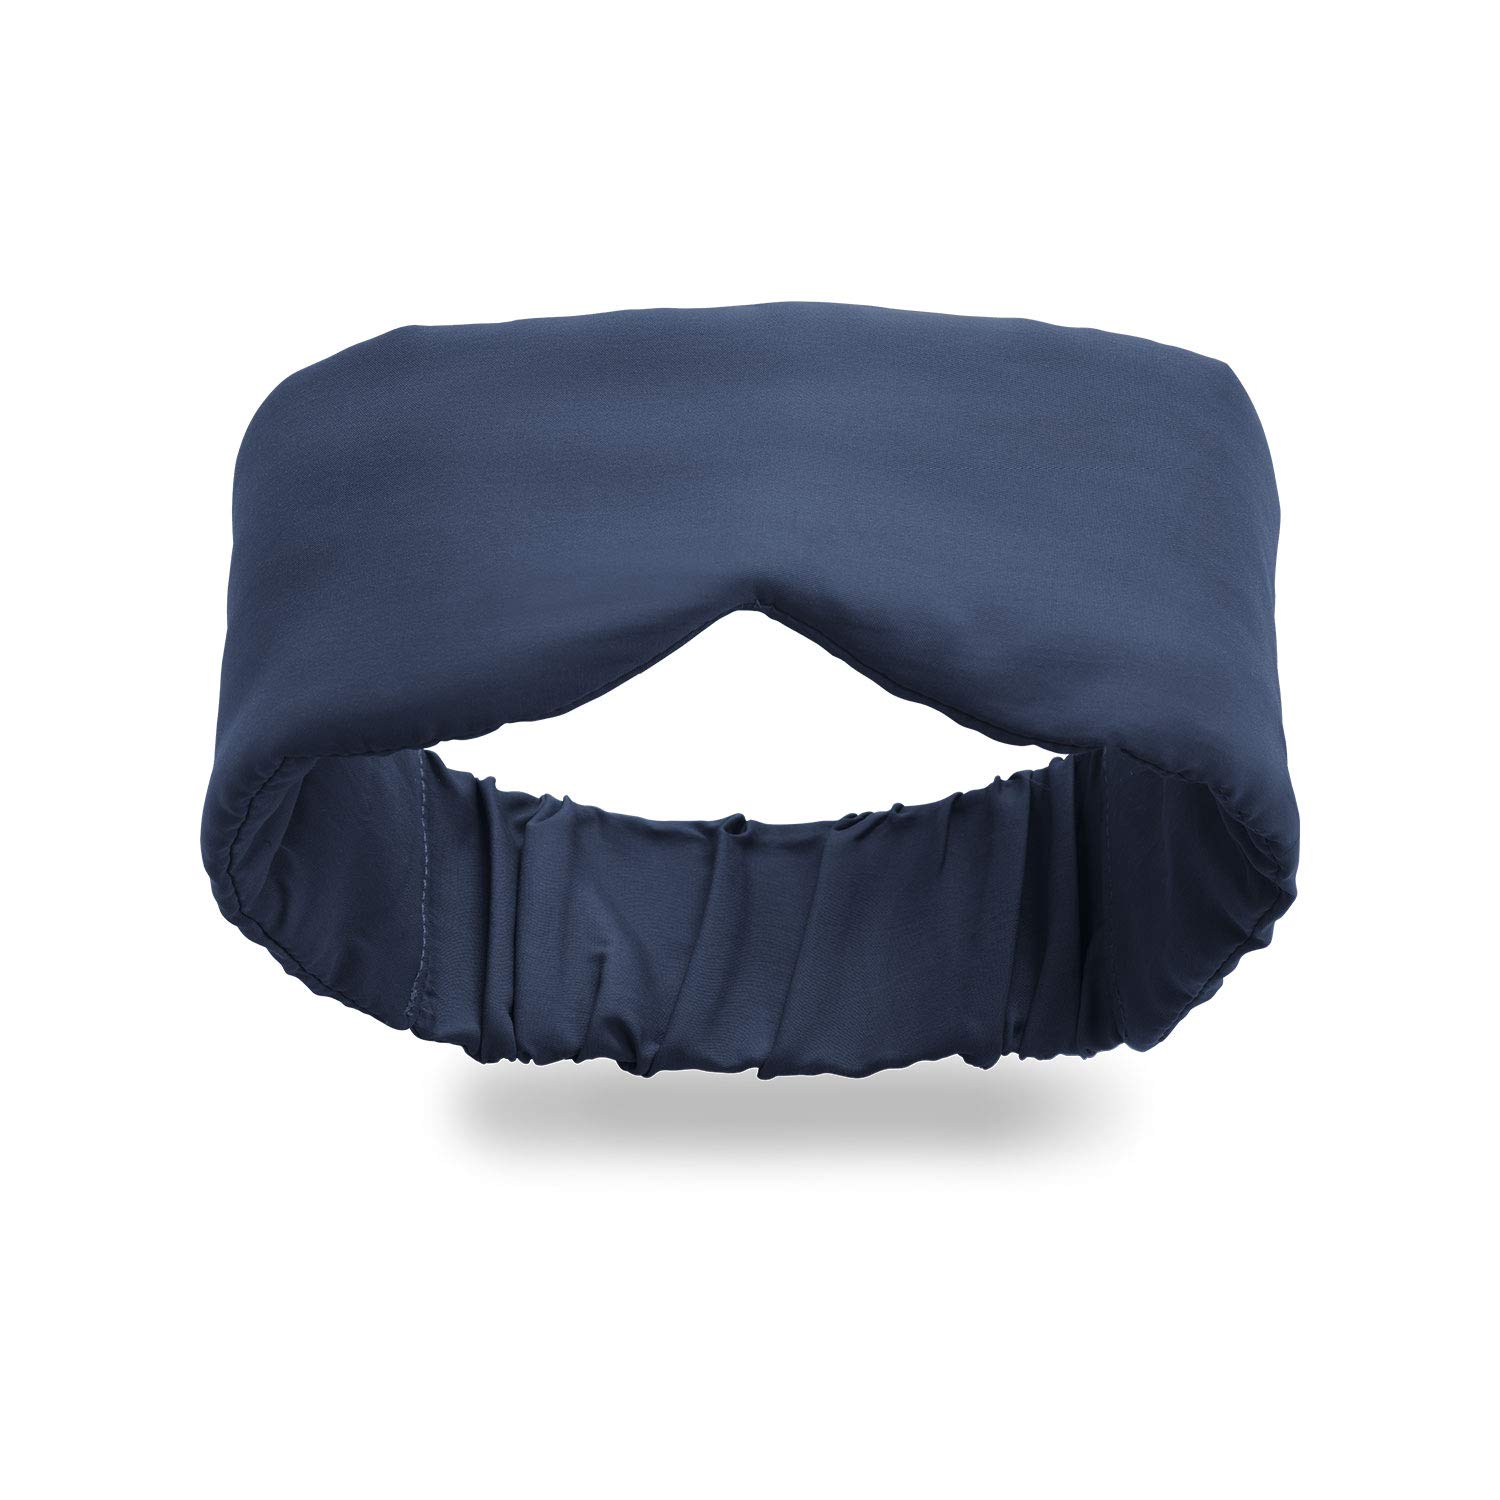 Infinity Travel - Bamboo Eye Mask Travel Sleep Mask - Super Soft Cool and Breathable - Machine Washable - Total Darkness (Navy) by Huzi